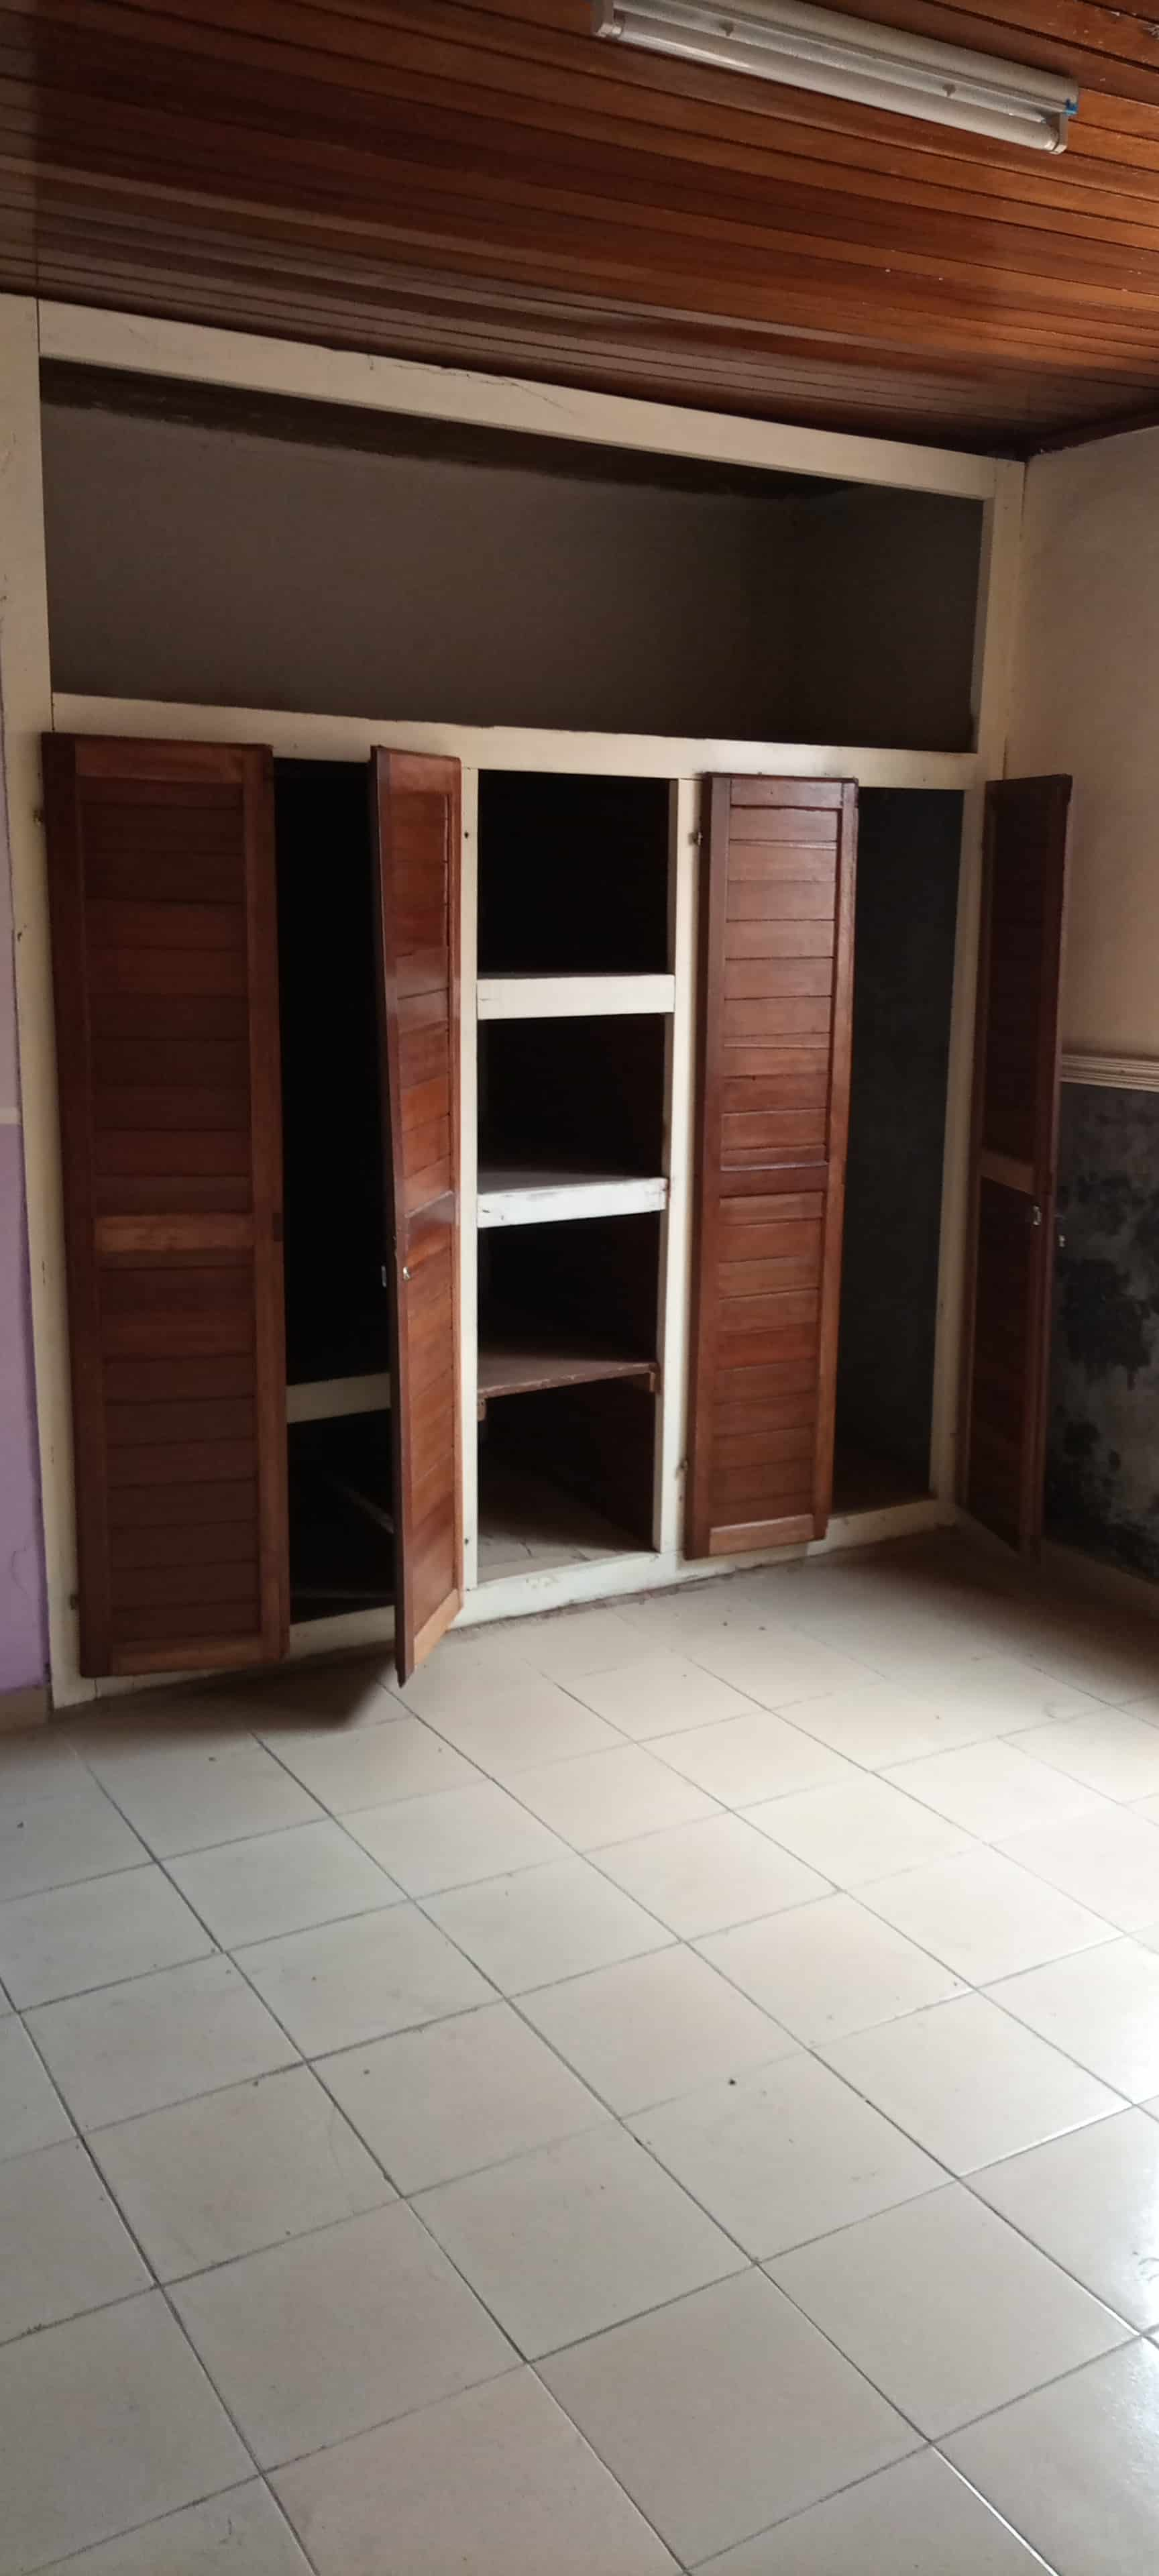 House (Villa) to rent - Douala, Makepe, Ver carrefour Patrick mboma - 1 living room(s), 3 bedroom(s), 2 bathroom(s) - 200 000 FCFA / month